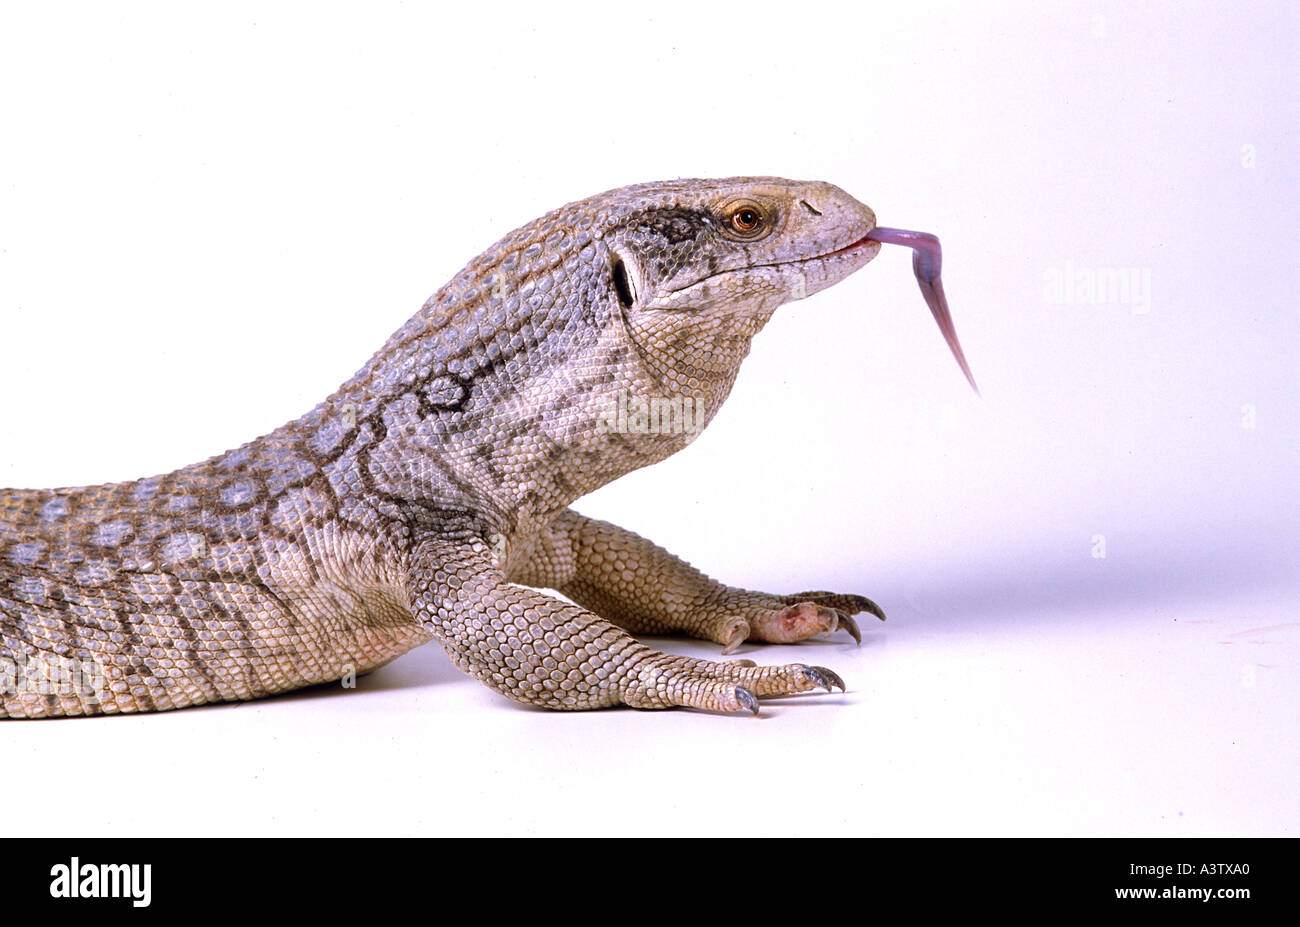 an examination of the savannah monitors lizards How hard are savannah monitors to keep like any monitor lizards they are definitely not a beginner lizard are savannahs show affection towards there owners this is a very debated topic in the reptile community if reptiles can show affection.